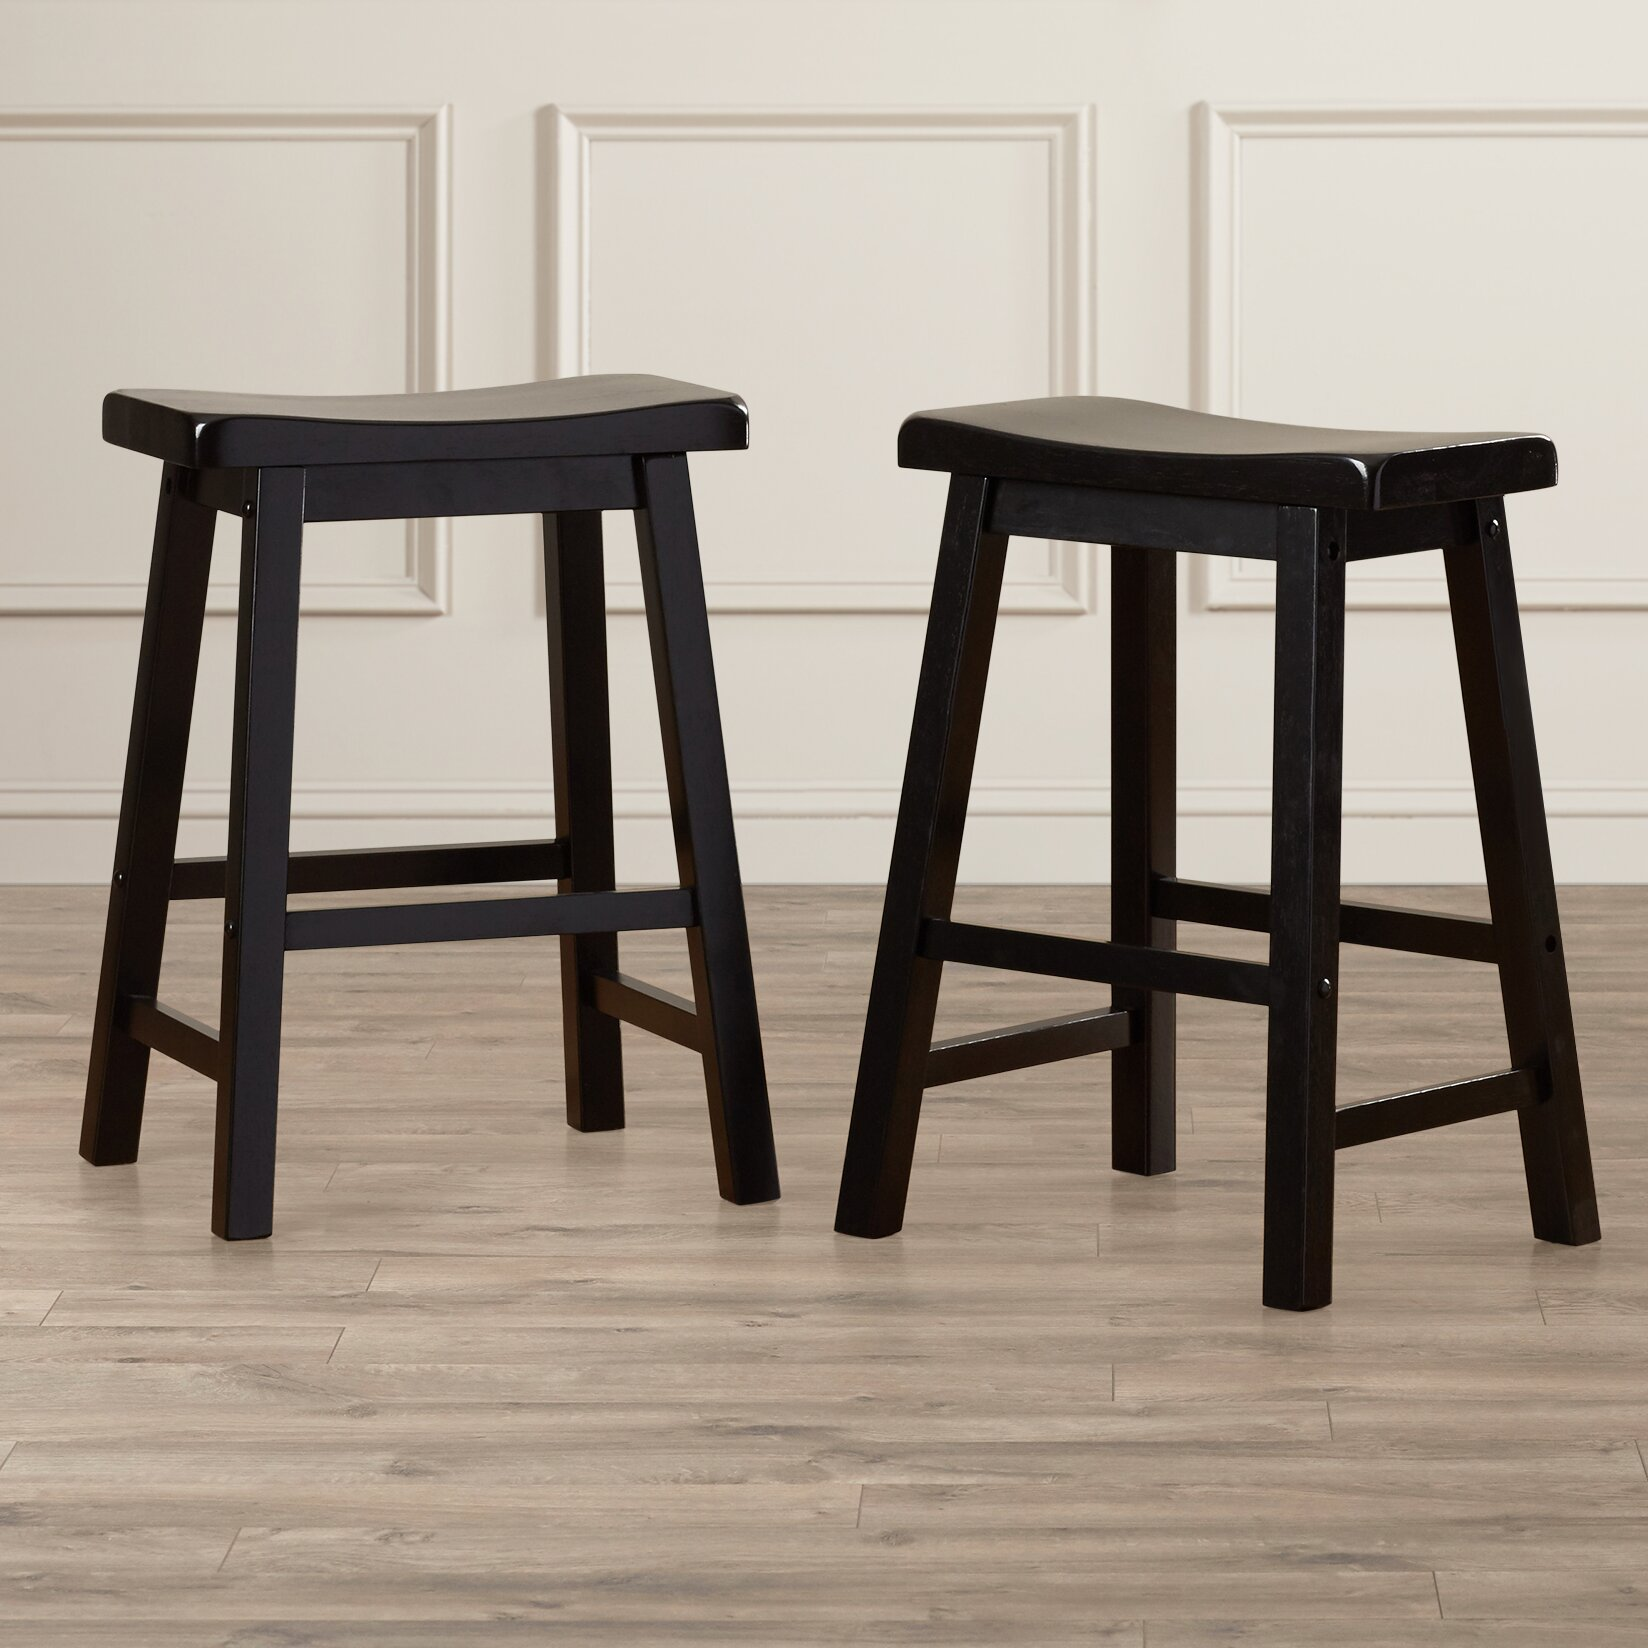 Charlton Home Cromwell 24quot Bar Stool amp Reviews Wayfair : Charlton Home Cromwell 24 Bar Stool CHLH4542 from www.wayfair.com size 1648 x 1648 jpeg 368kB